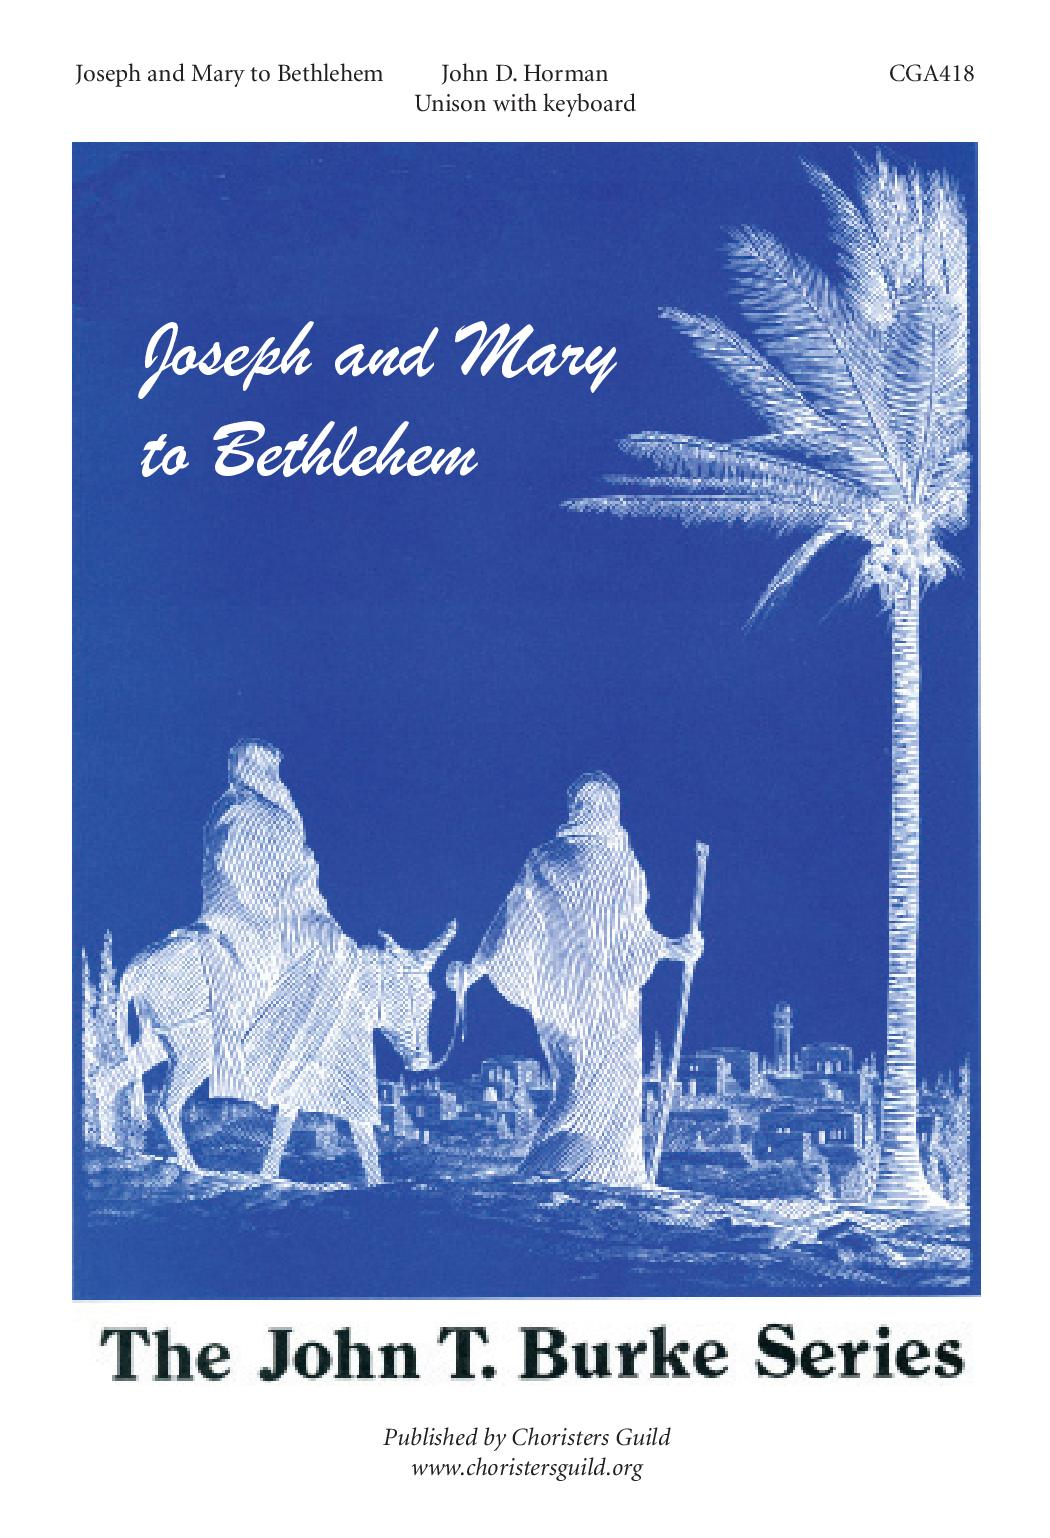 Joseph and Mary to Bethlehem